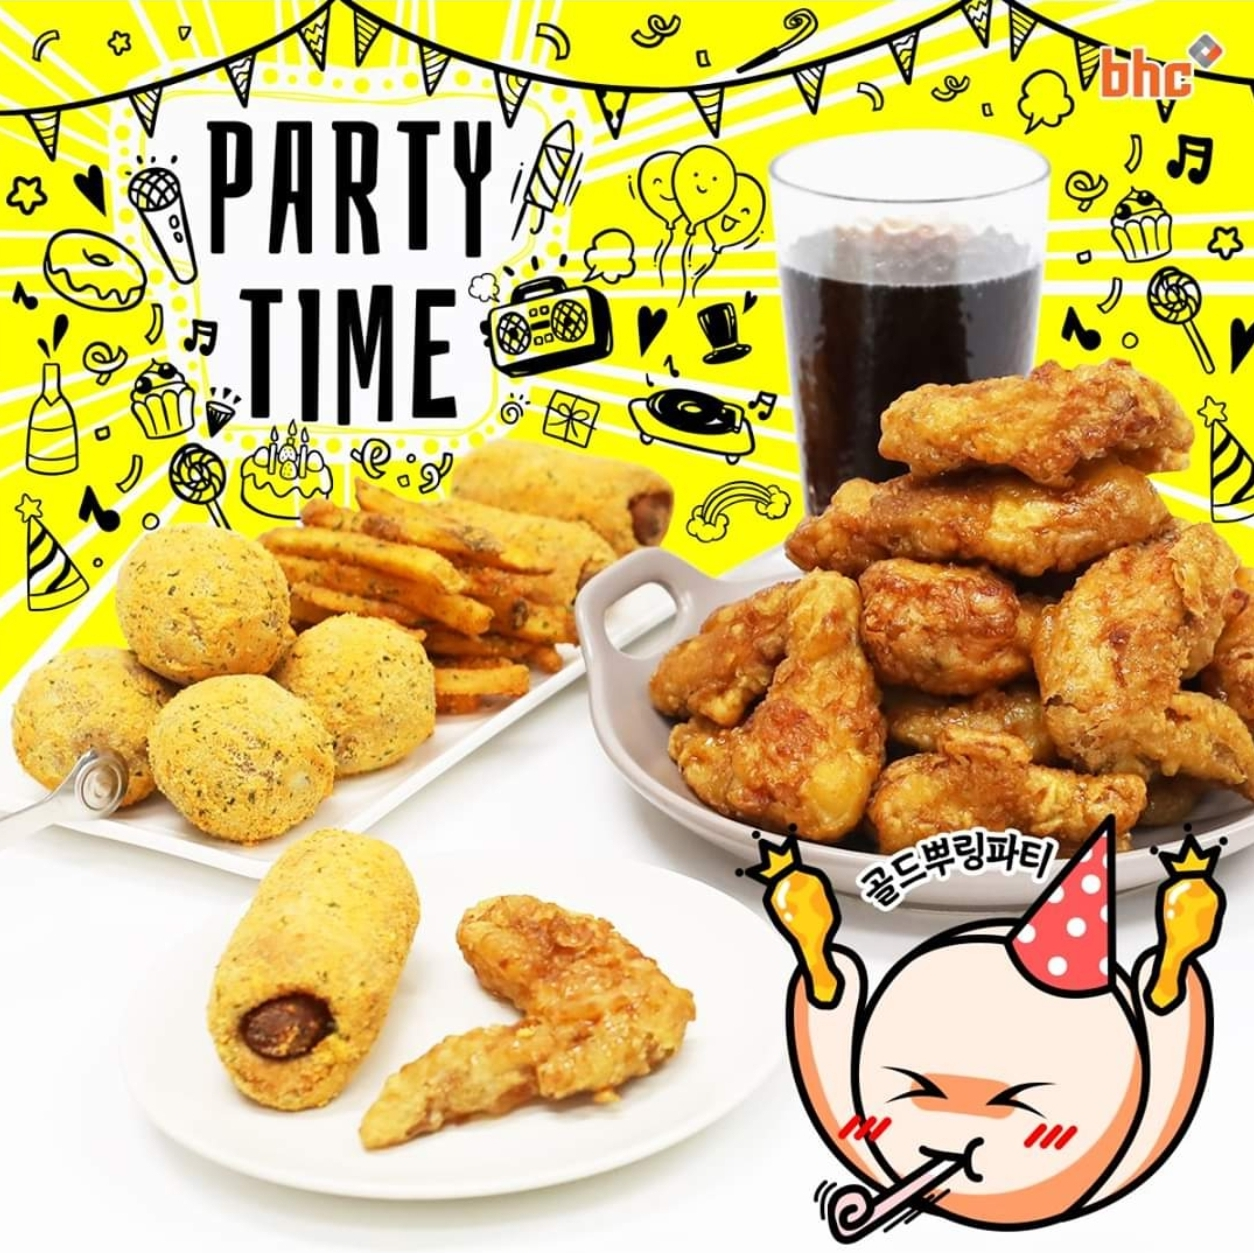 BHC치킨 PARTY TIME